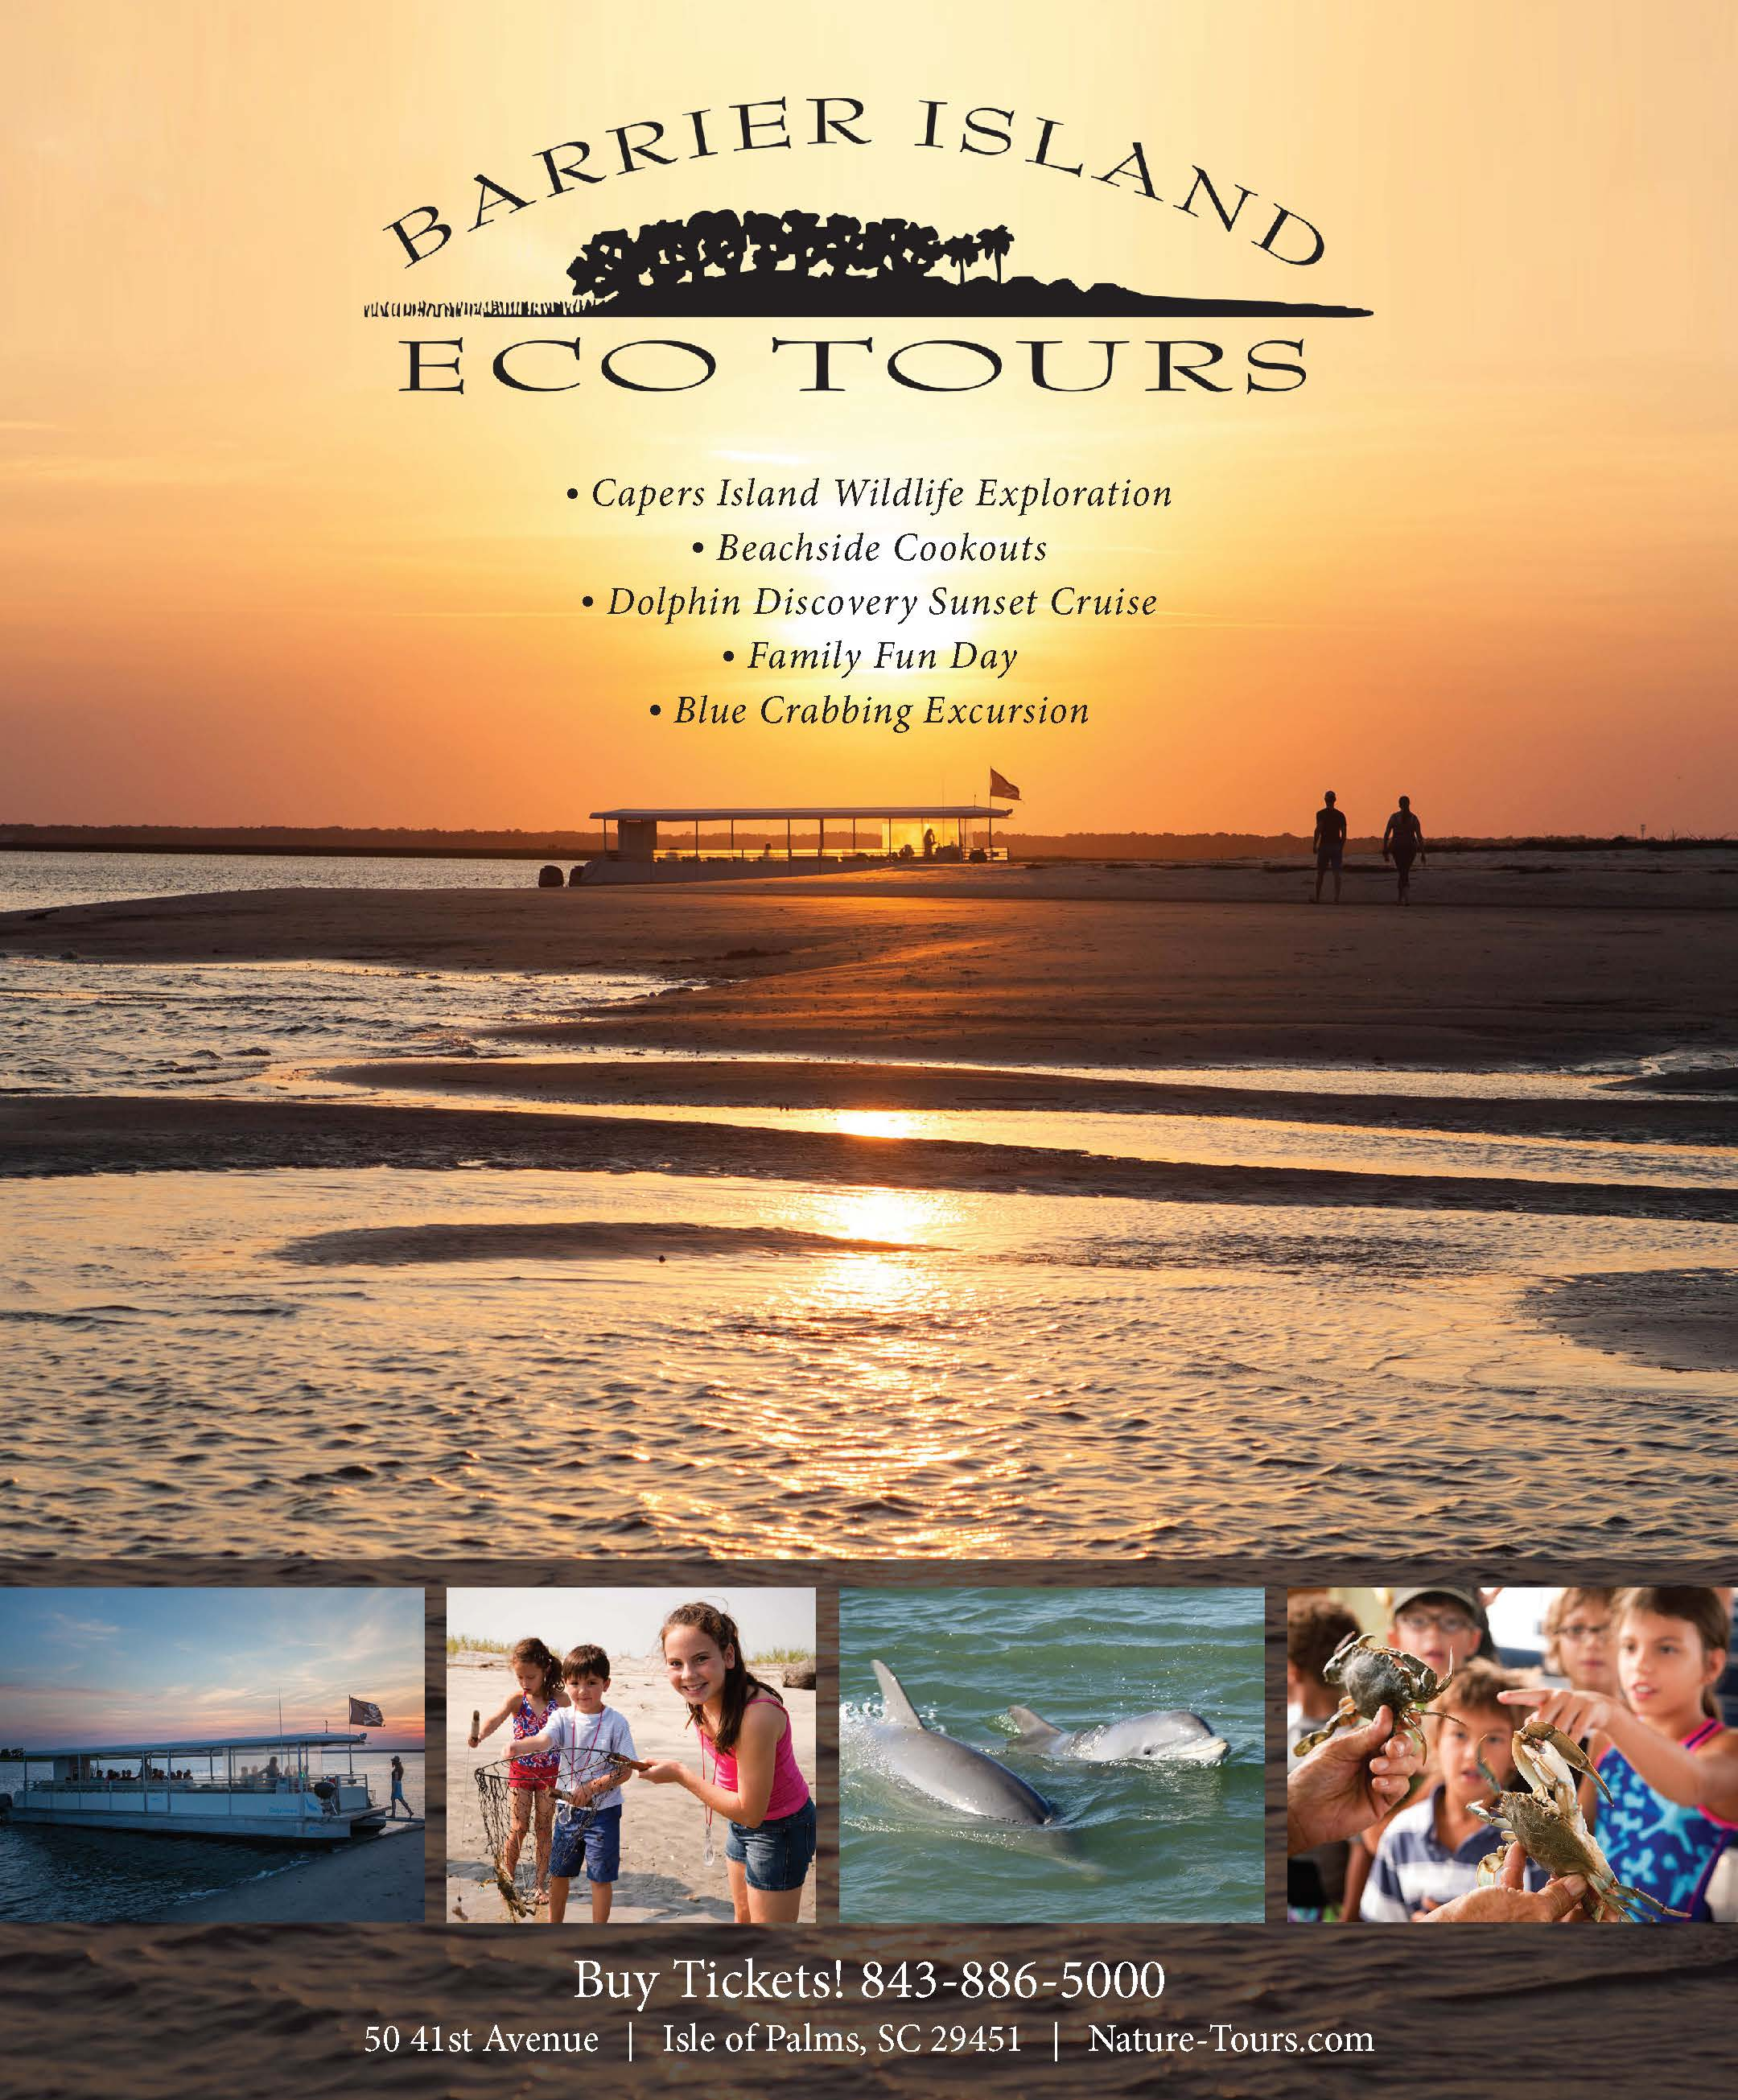 """Barrier Island Eco Tours -- <a href=""""http://nature-tours.com/"""">http://nature-tours.com/</a>"""